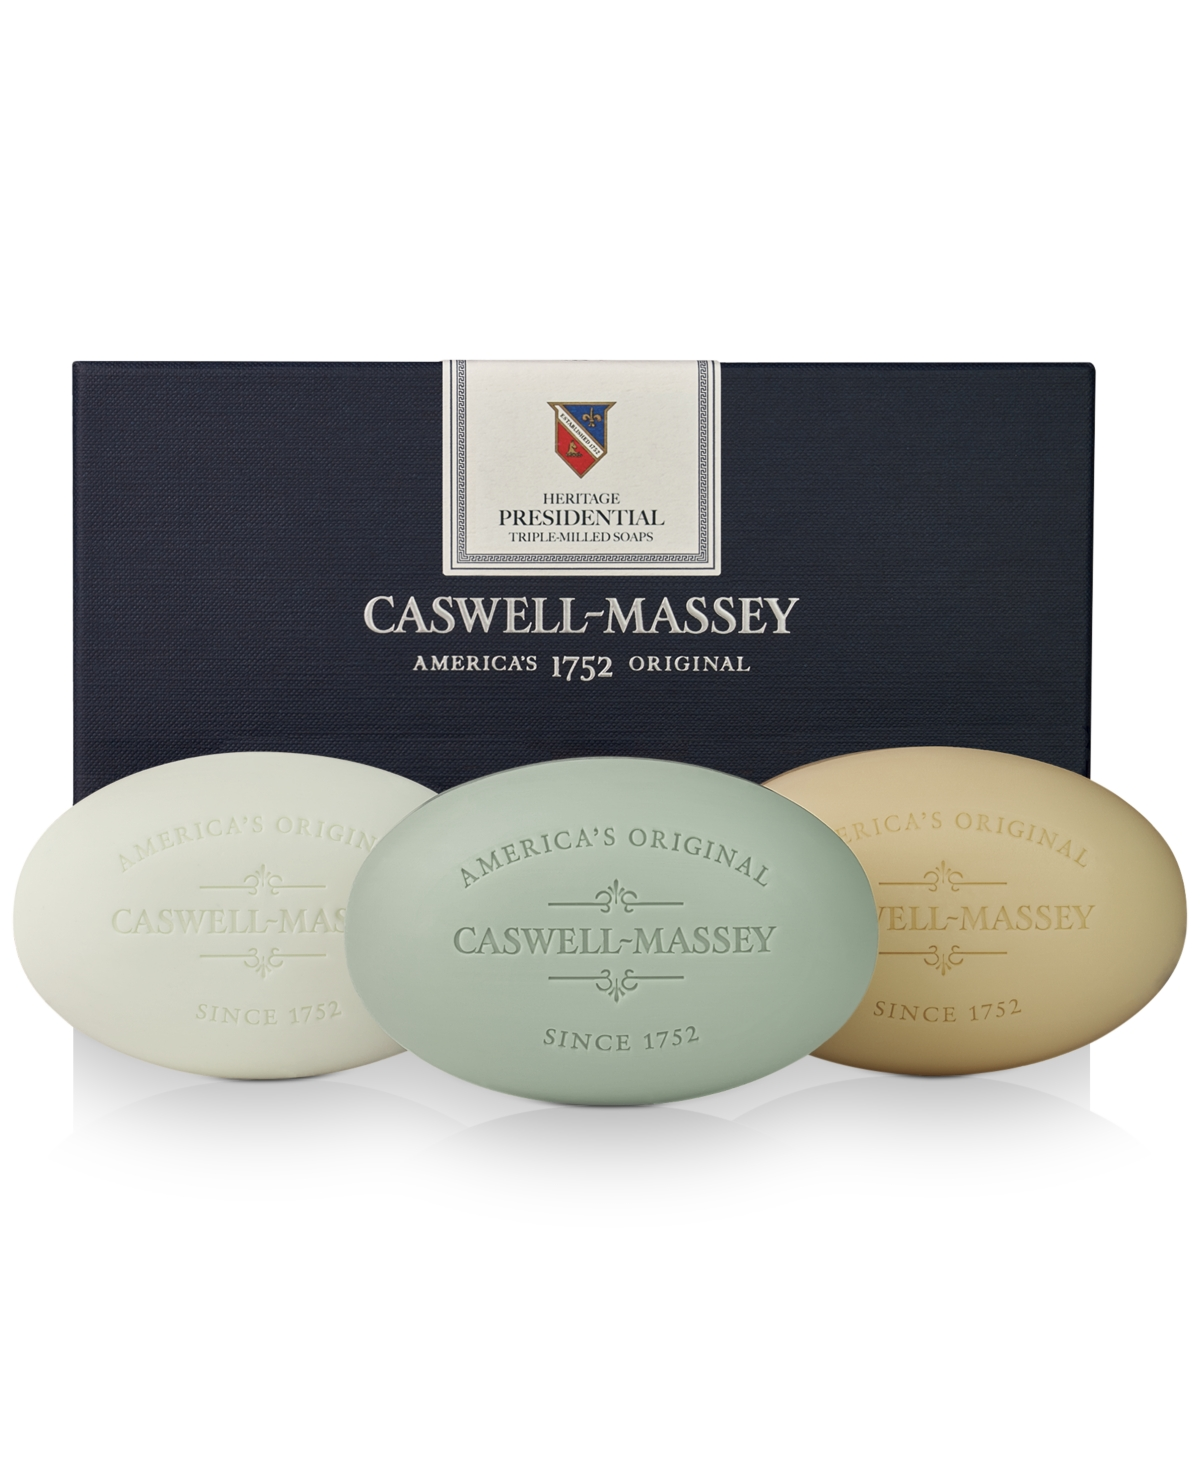 Caswell Massey 3-Pc. Heritage Presidential Bath Soap Gift Set